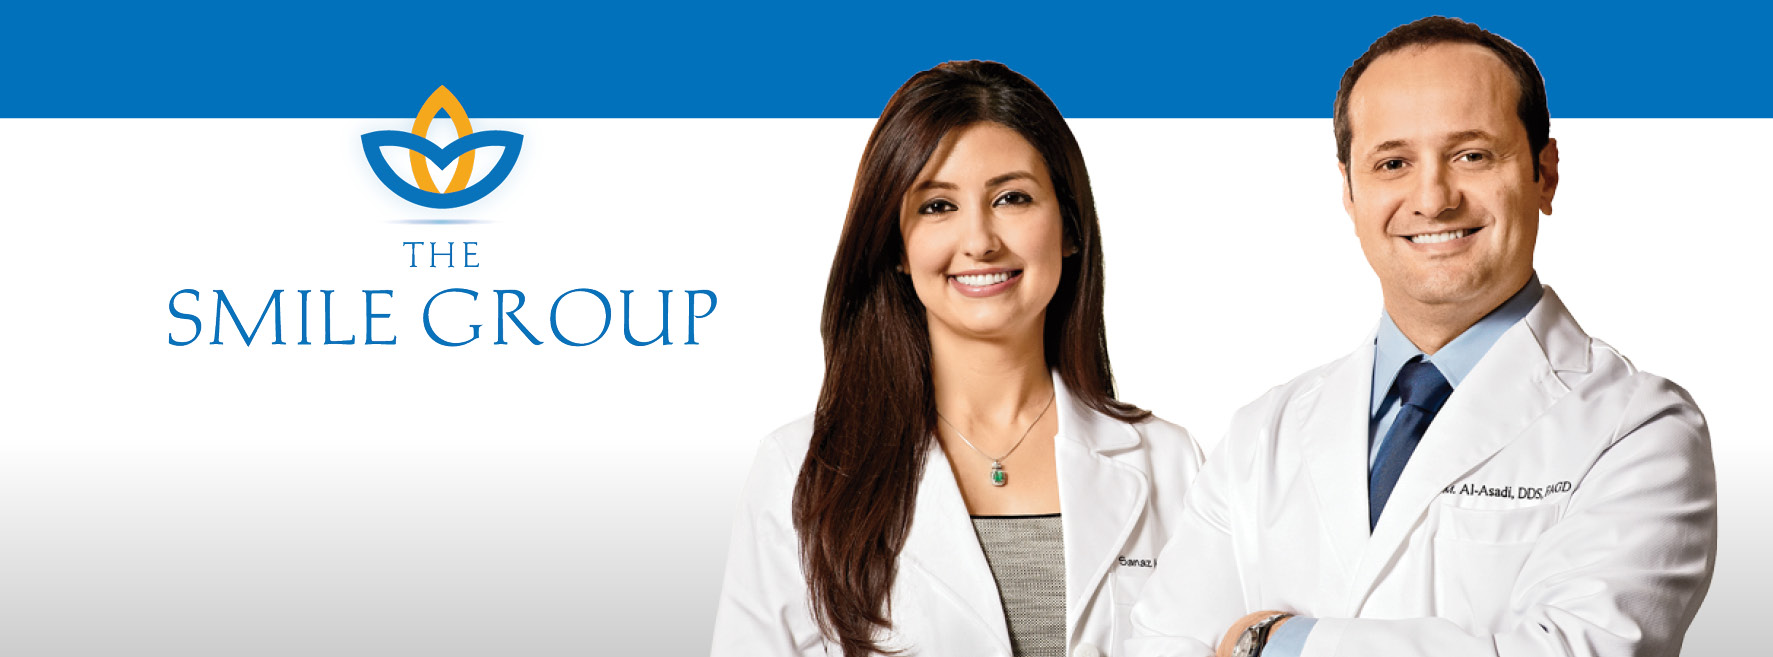 The Smile Group reviews | Cosmetic Dentists at 806 Central Ave, Suite 201 - Highland Park IL